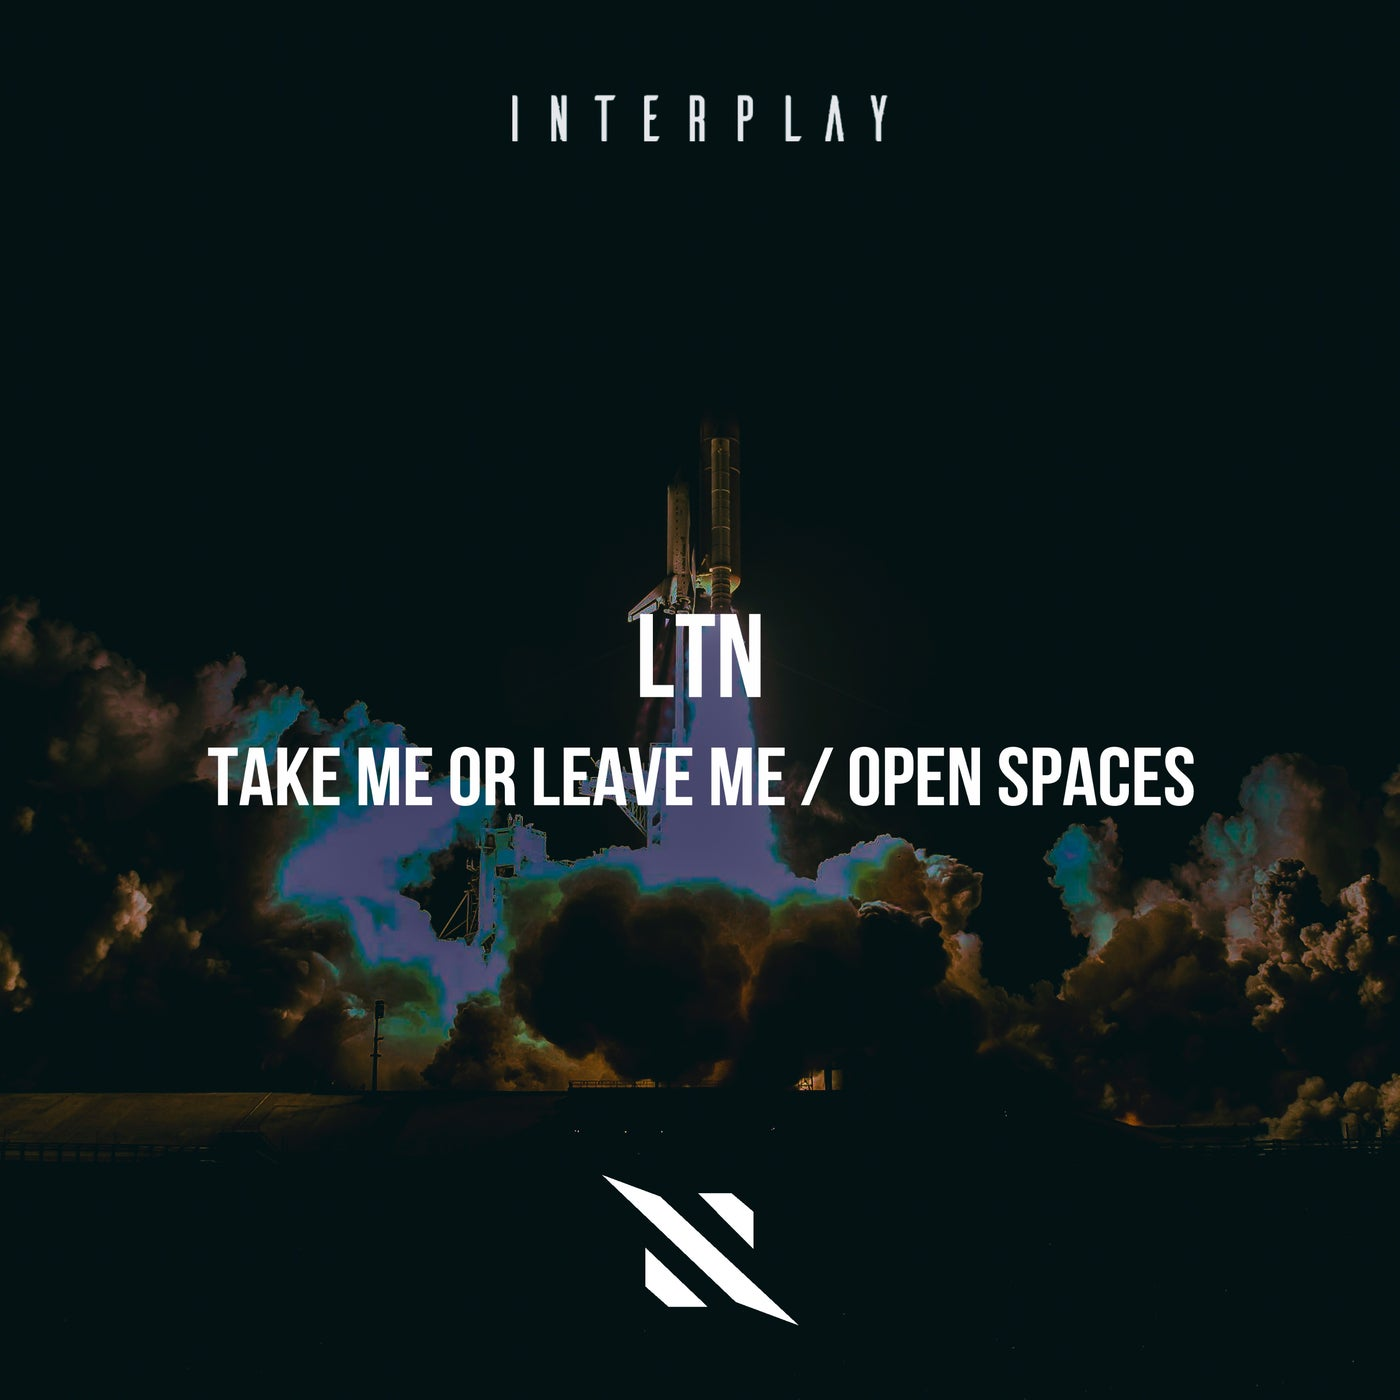 Ltn - Take Me Or Leave Me / Open Spaces (2021)